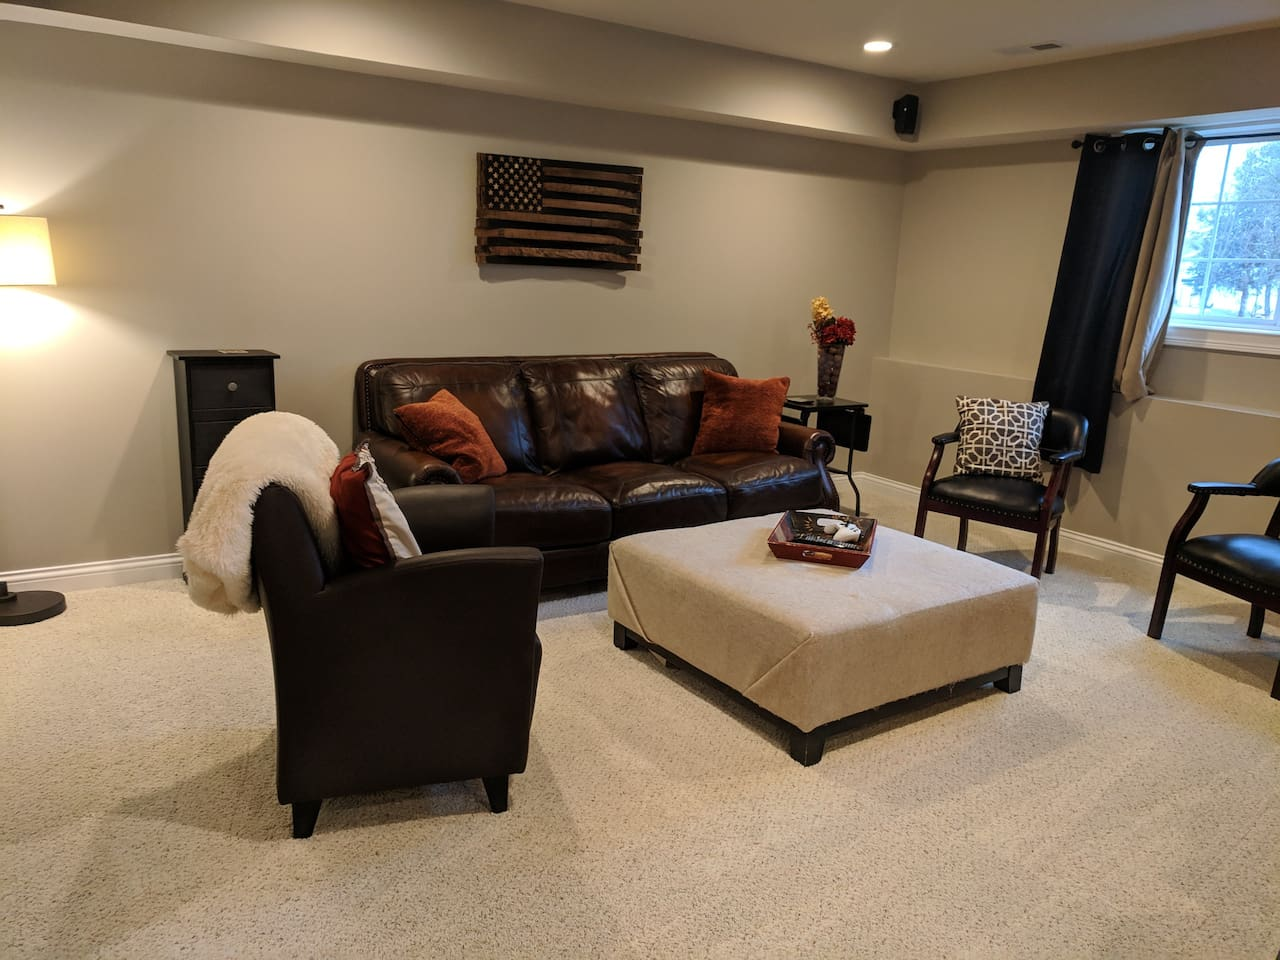 Comfy, cozy living room with a leather sofa and extra seating.